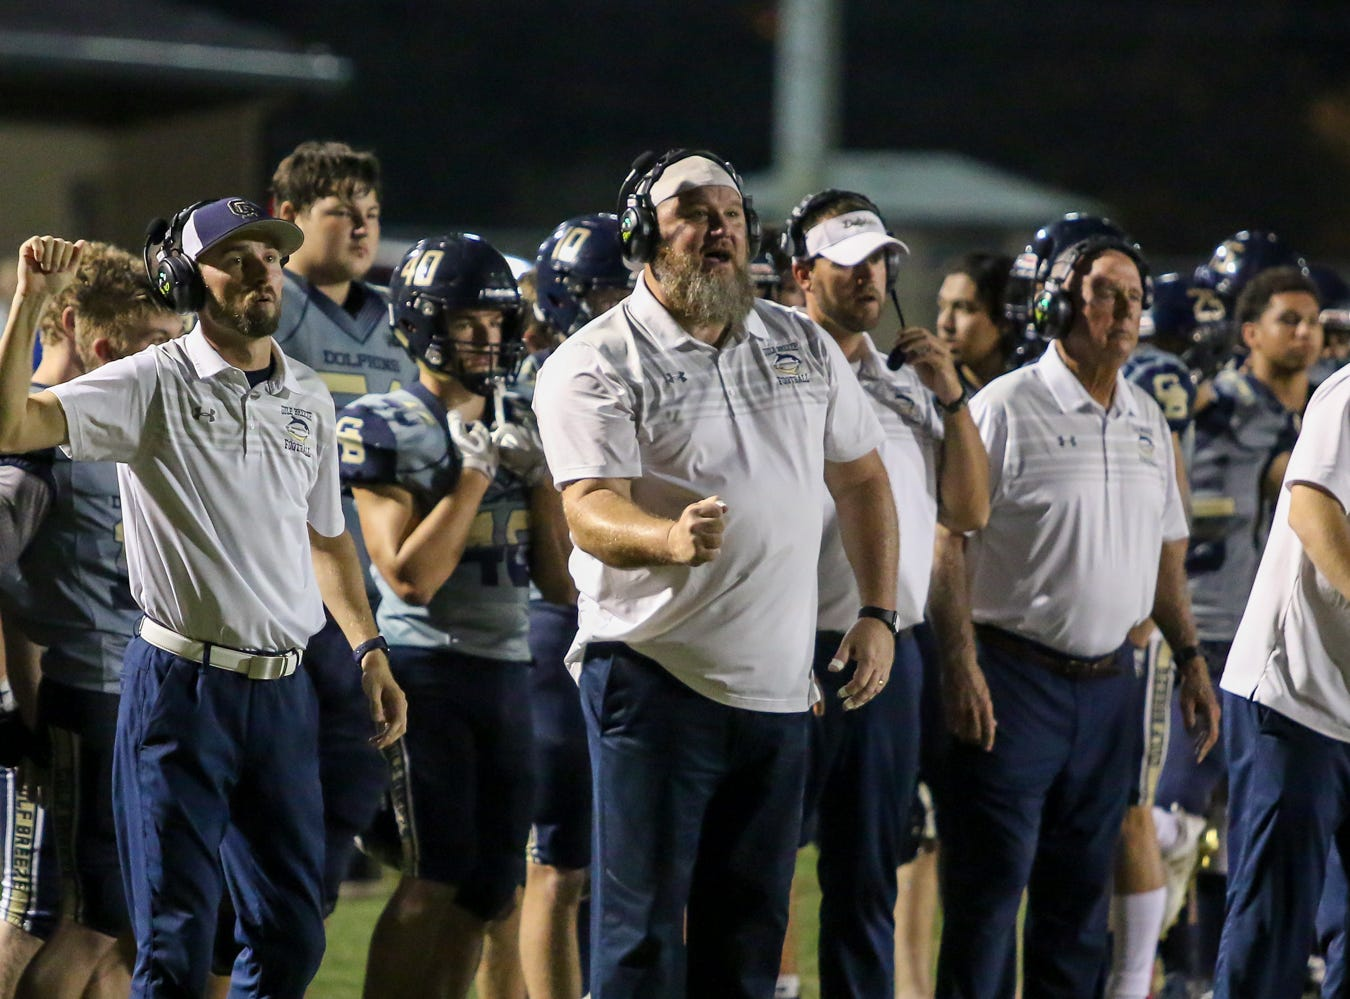 Gulf Breeze coaches call in a defensive goal line play against Milton in the District 2-6A game at Gulf Breeze High School on Friday.